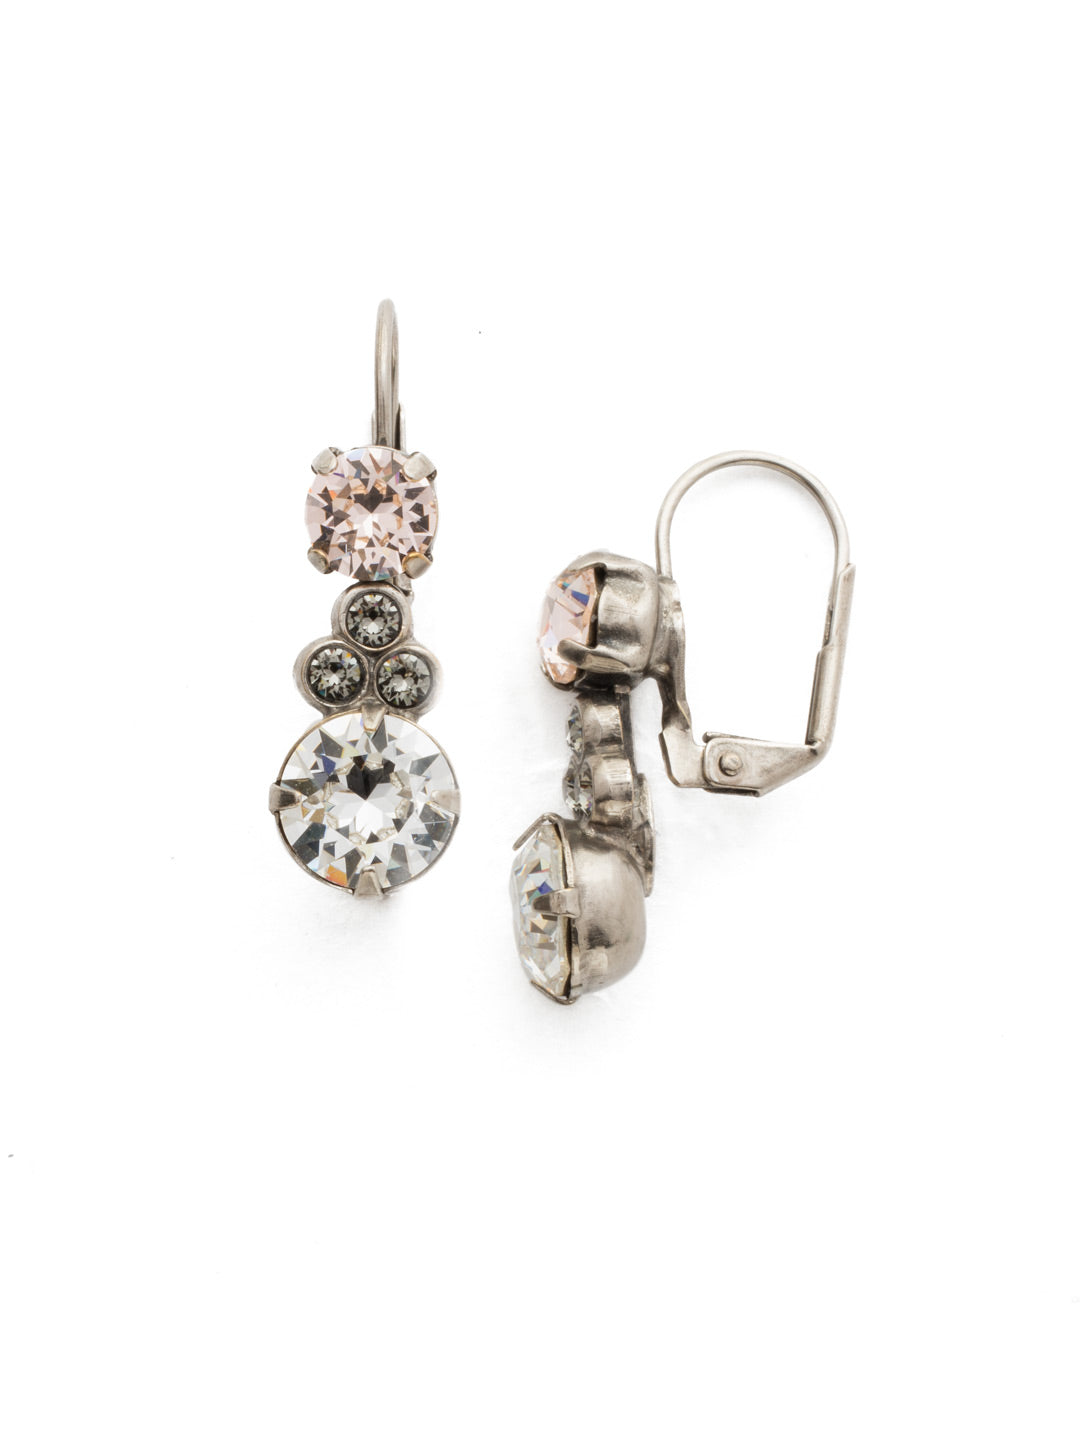 Clustered Circular Crystal Drop Dangle Earrings - ECJ14ASSNB